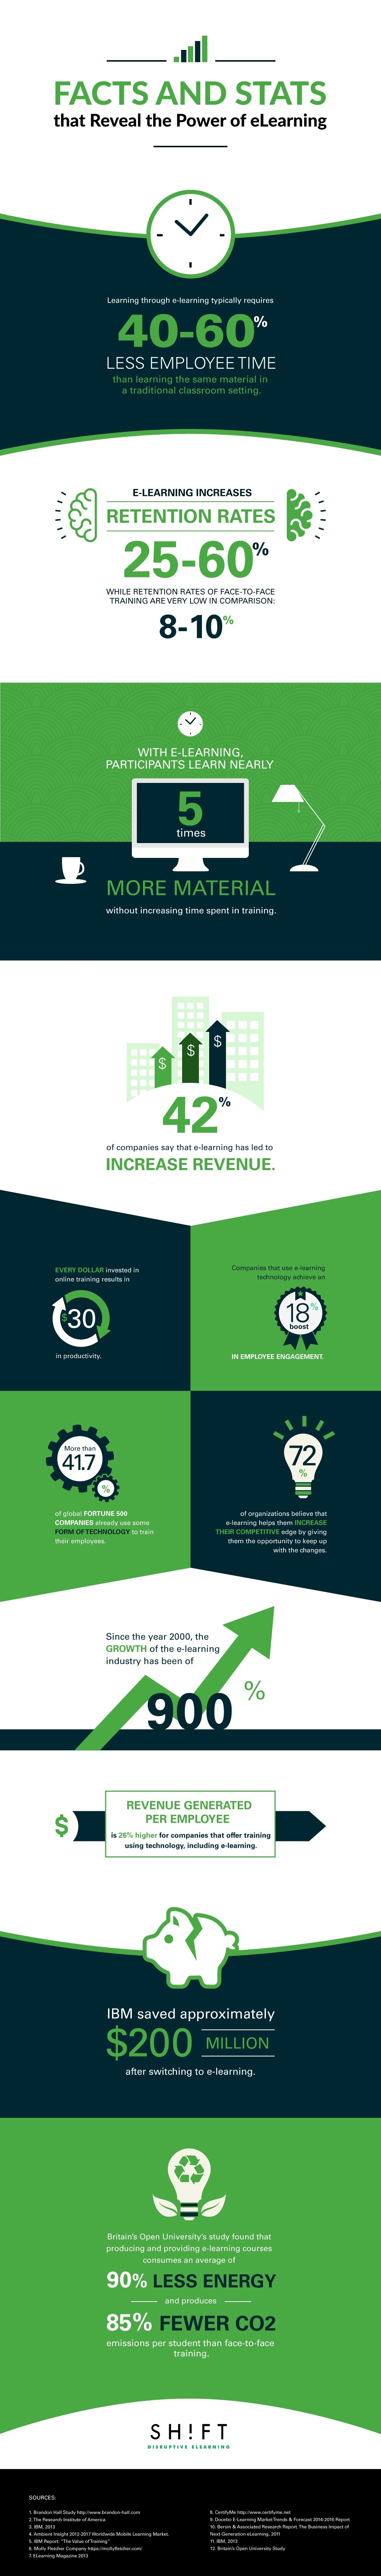 Facts and Stats that Reveal the Power of eLearning Infographic